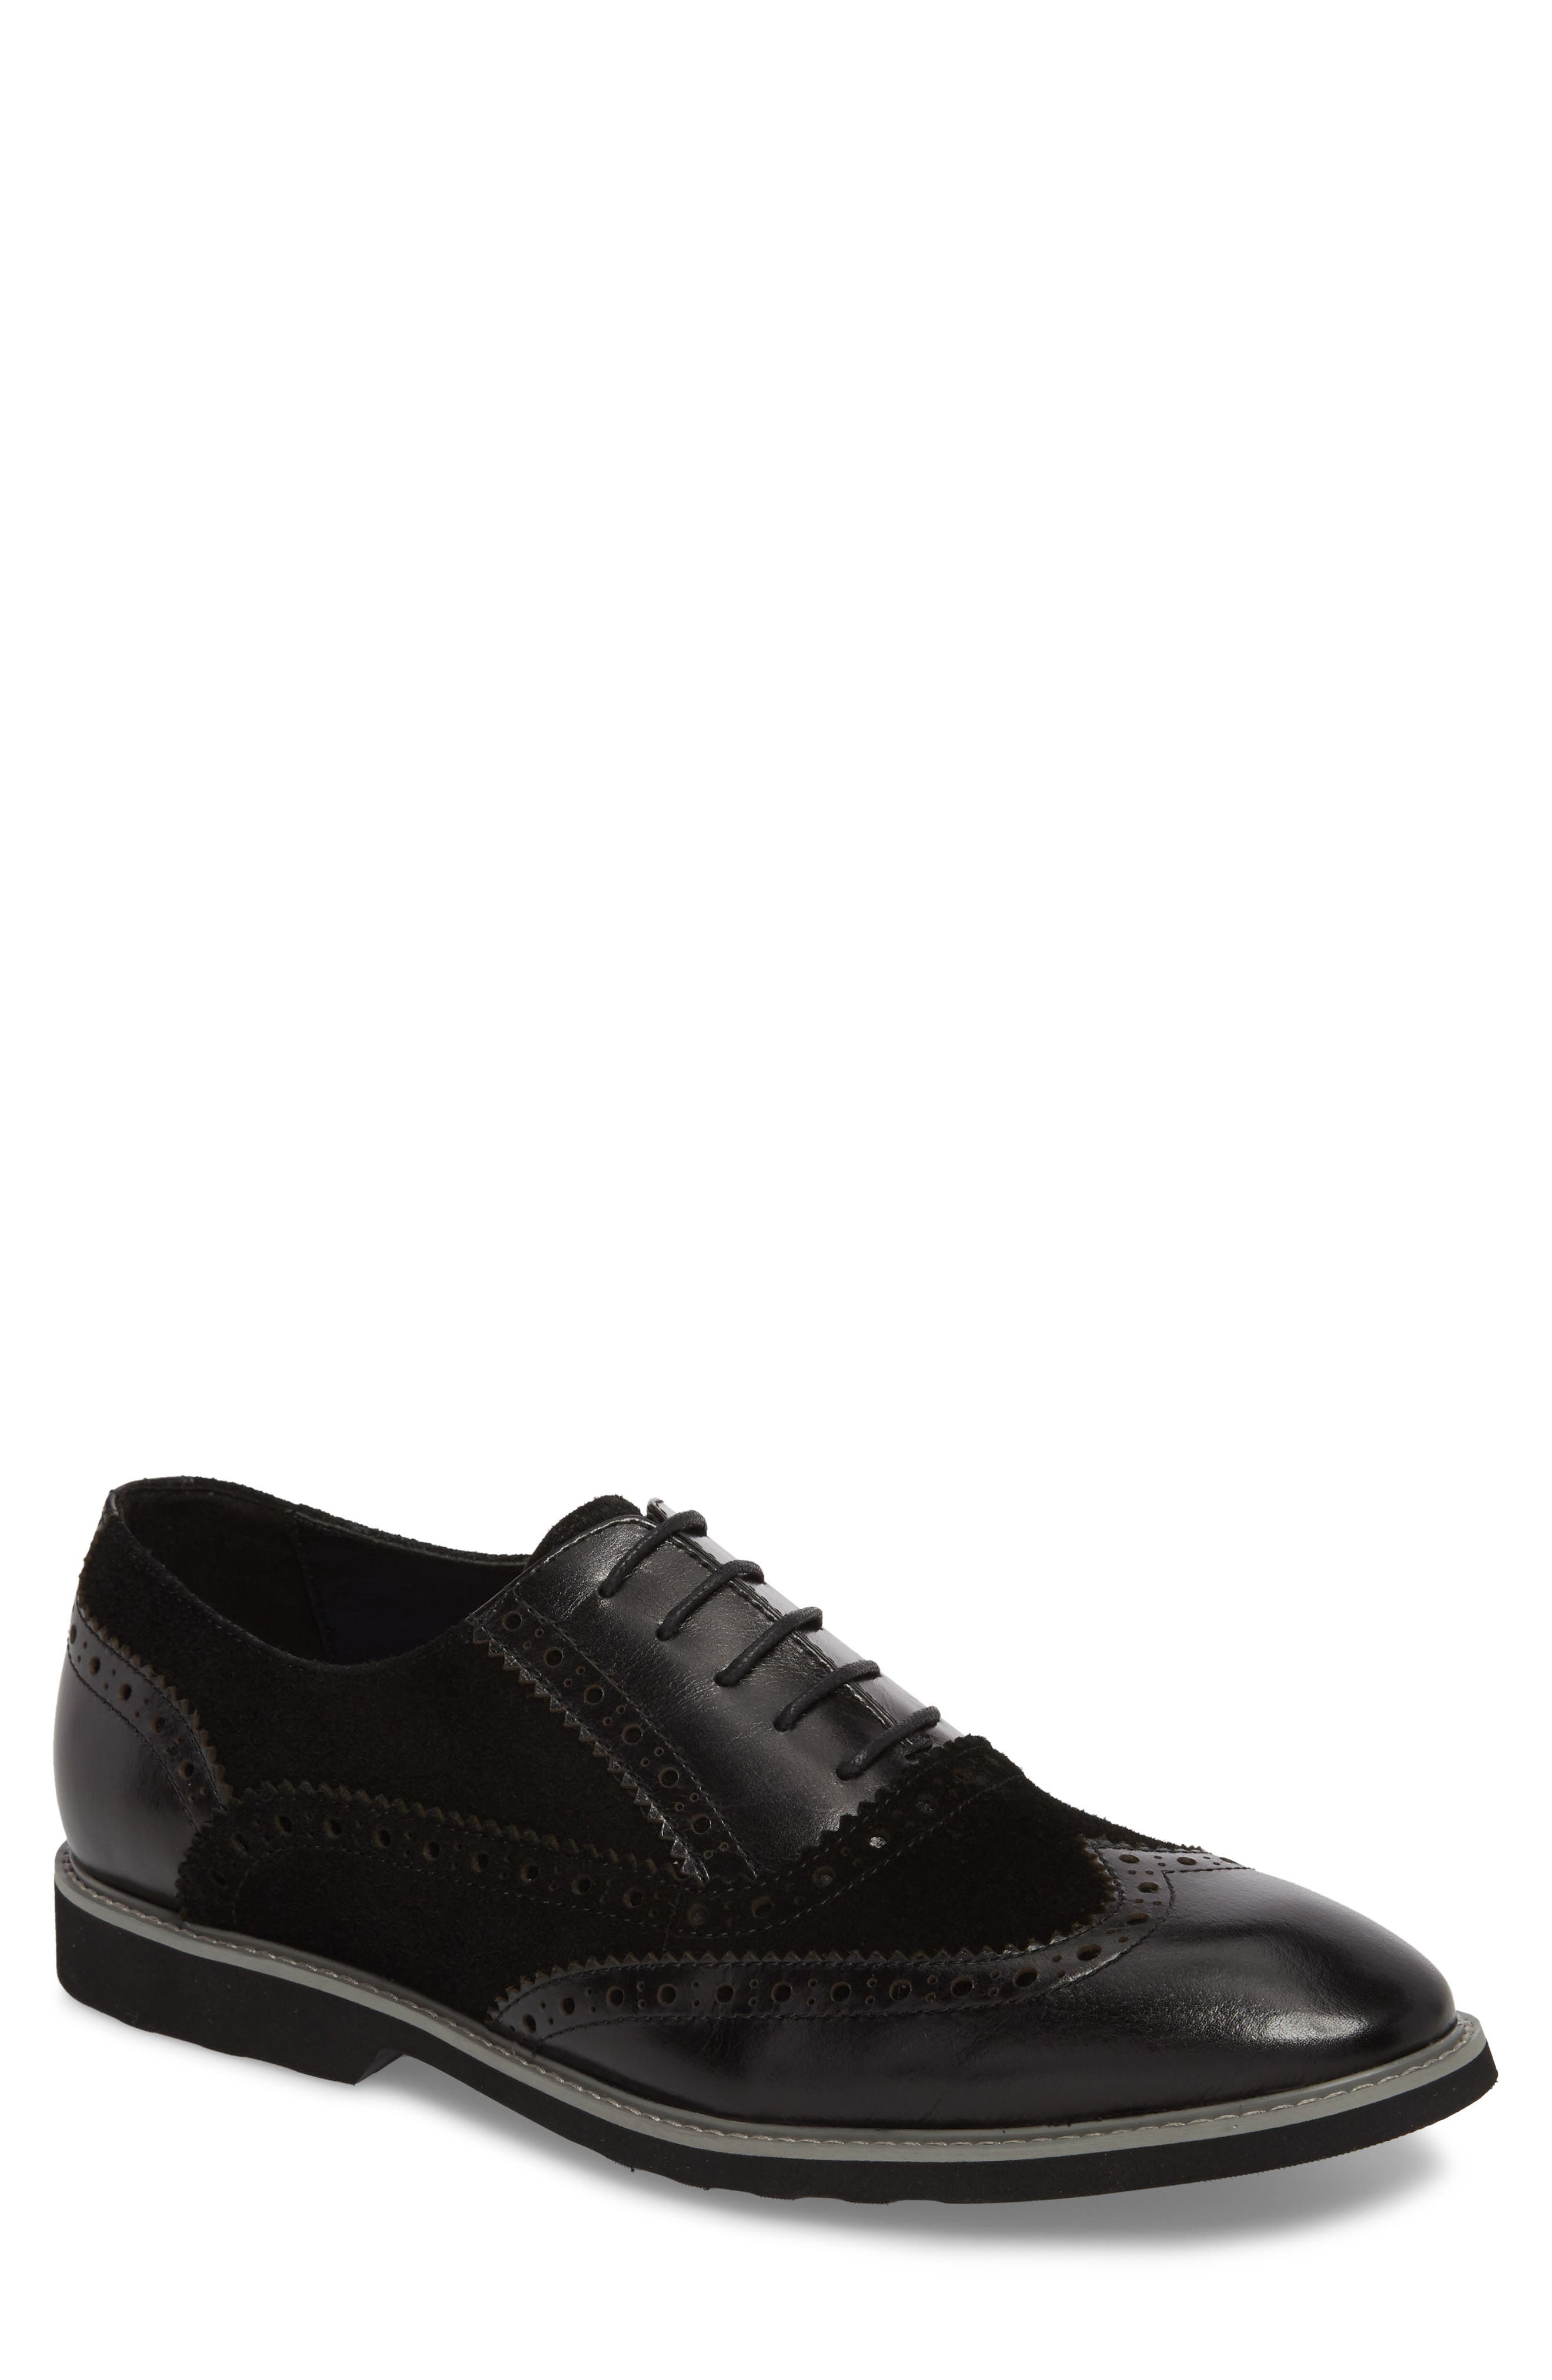 English Laundry Chorley Wingtip Oxford (Men)